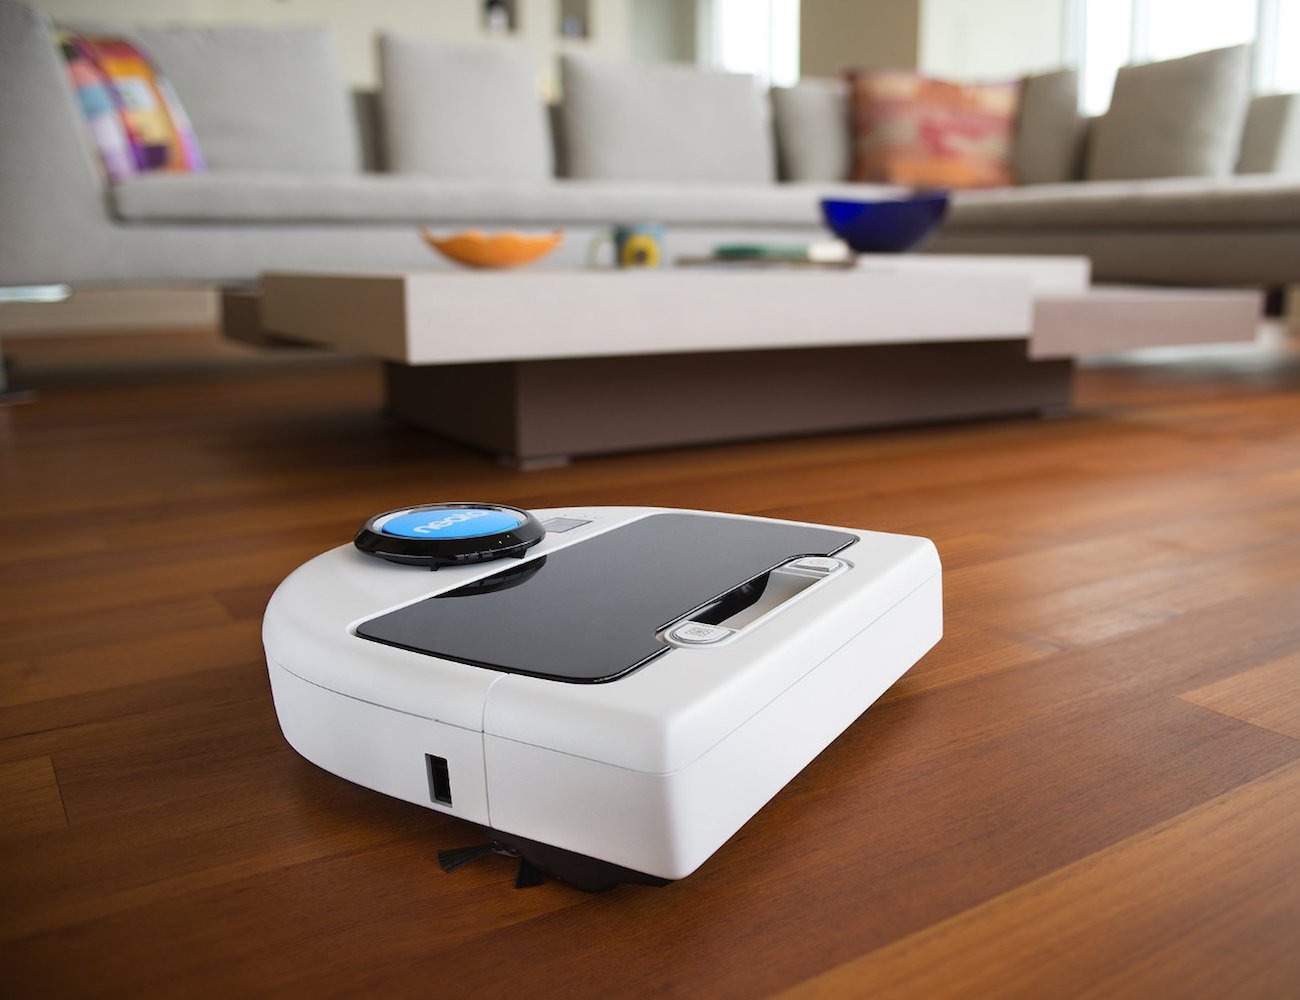 Neato+Botvac+D+Series+Robot+Vacuum+Cleaner